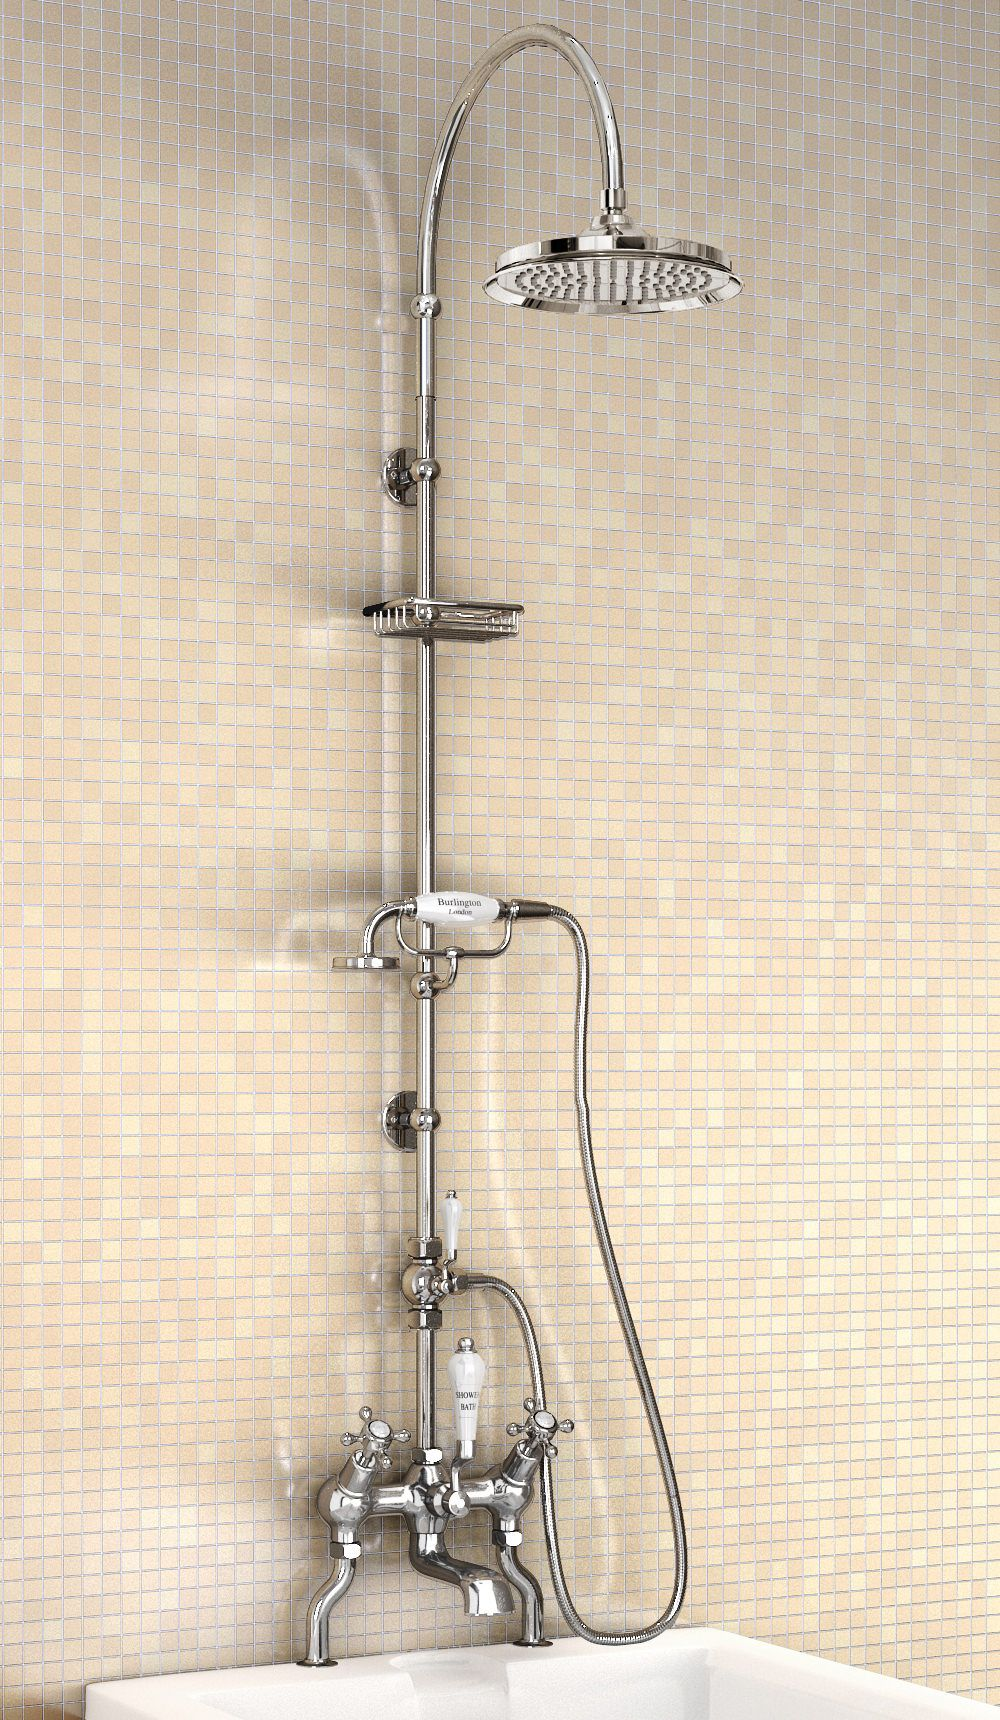 Angled Deck Mounted Bath Shower Mixer With Rigid Riser And